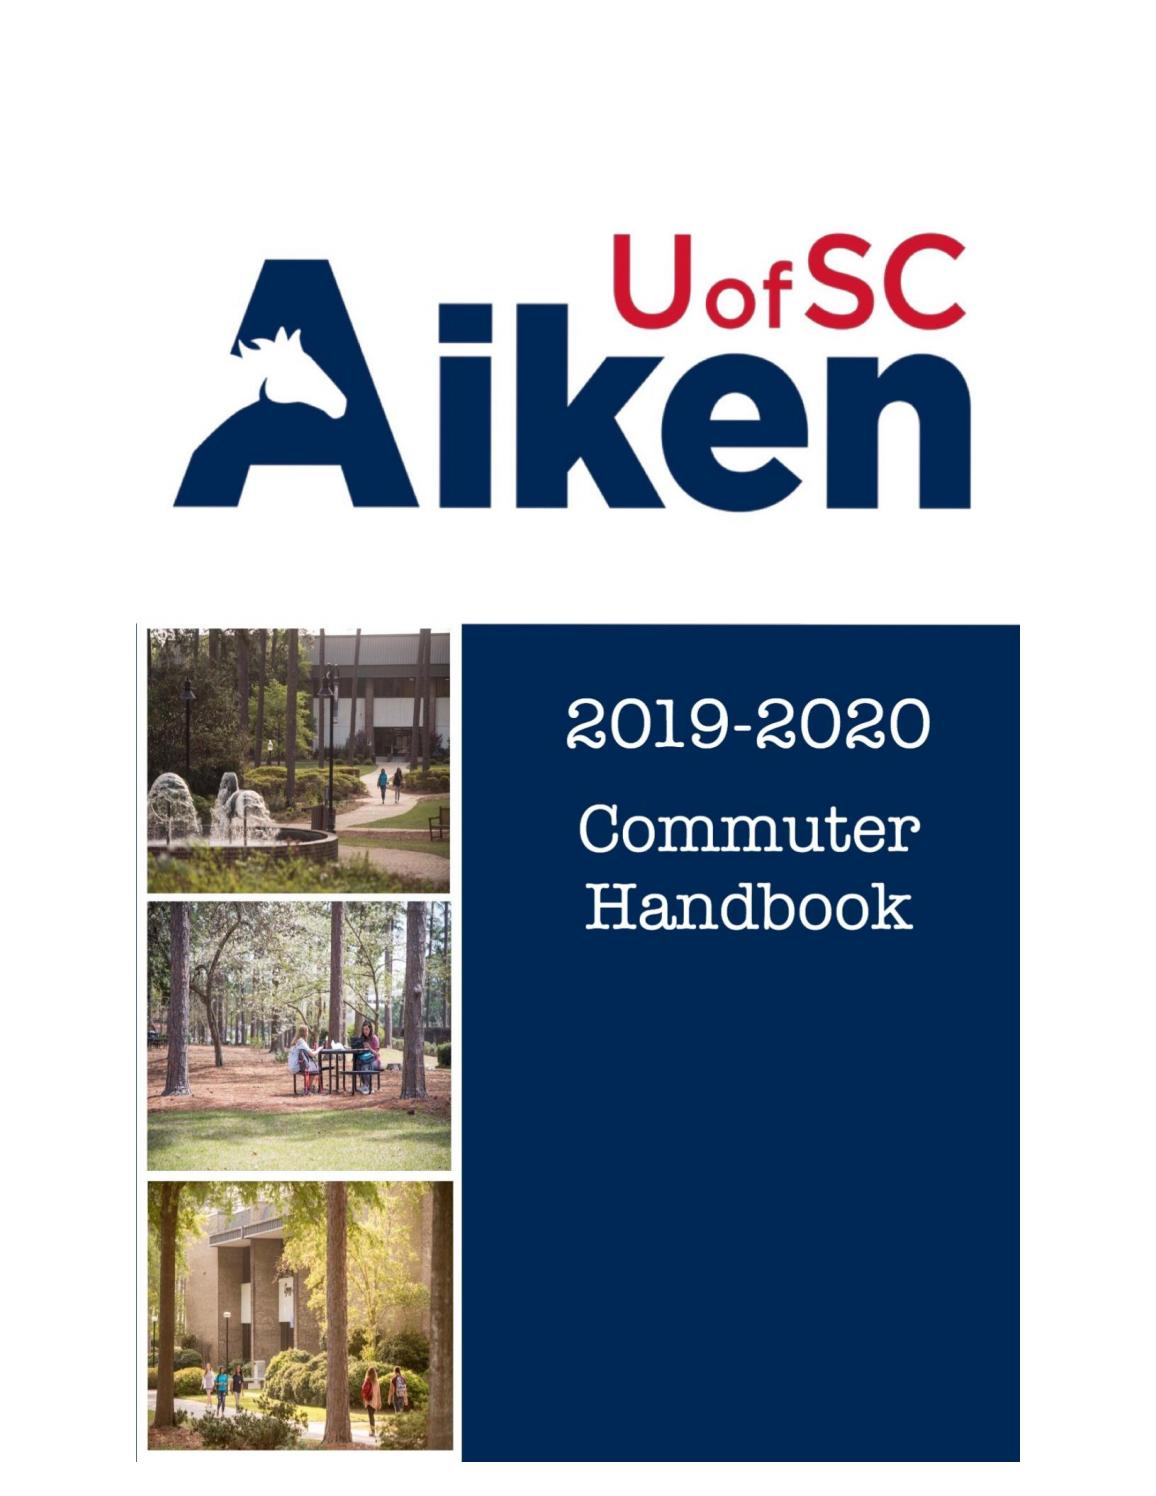 Usc Fall Semester 2020.2019 2020 Guide For Commuter Students By Usc Aiken Issuu